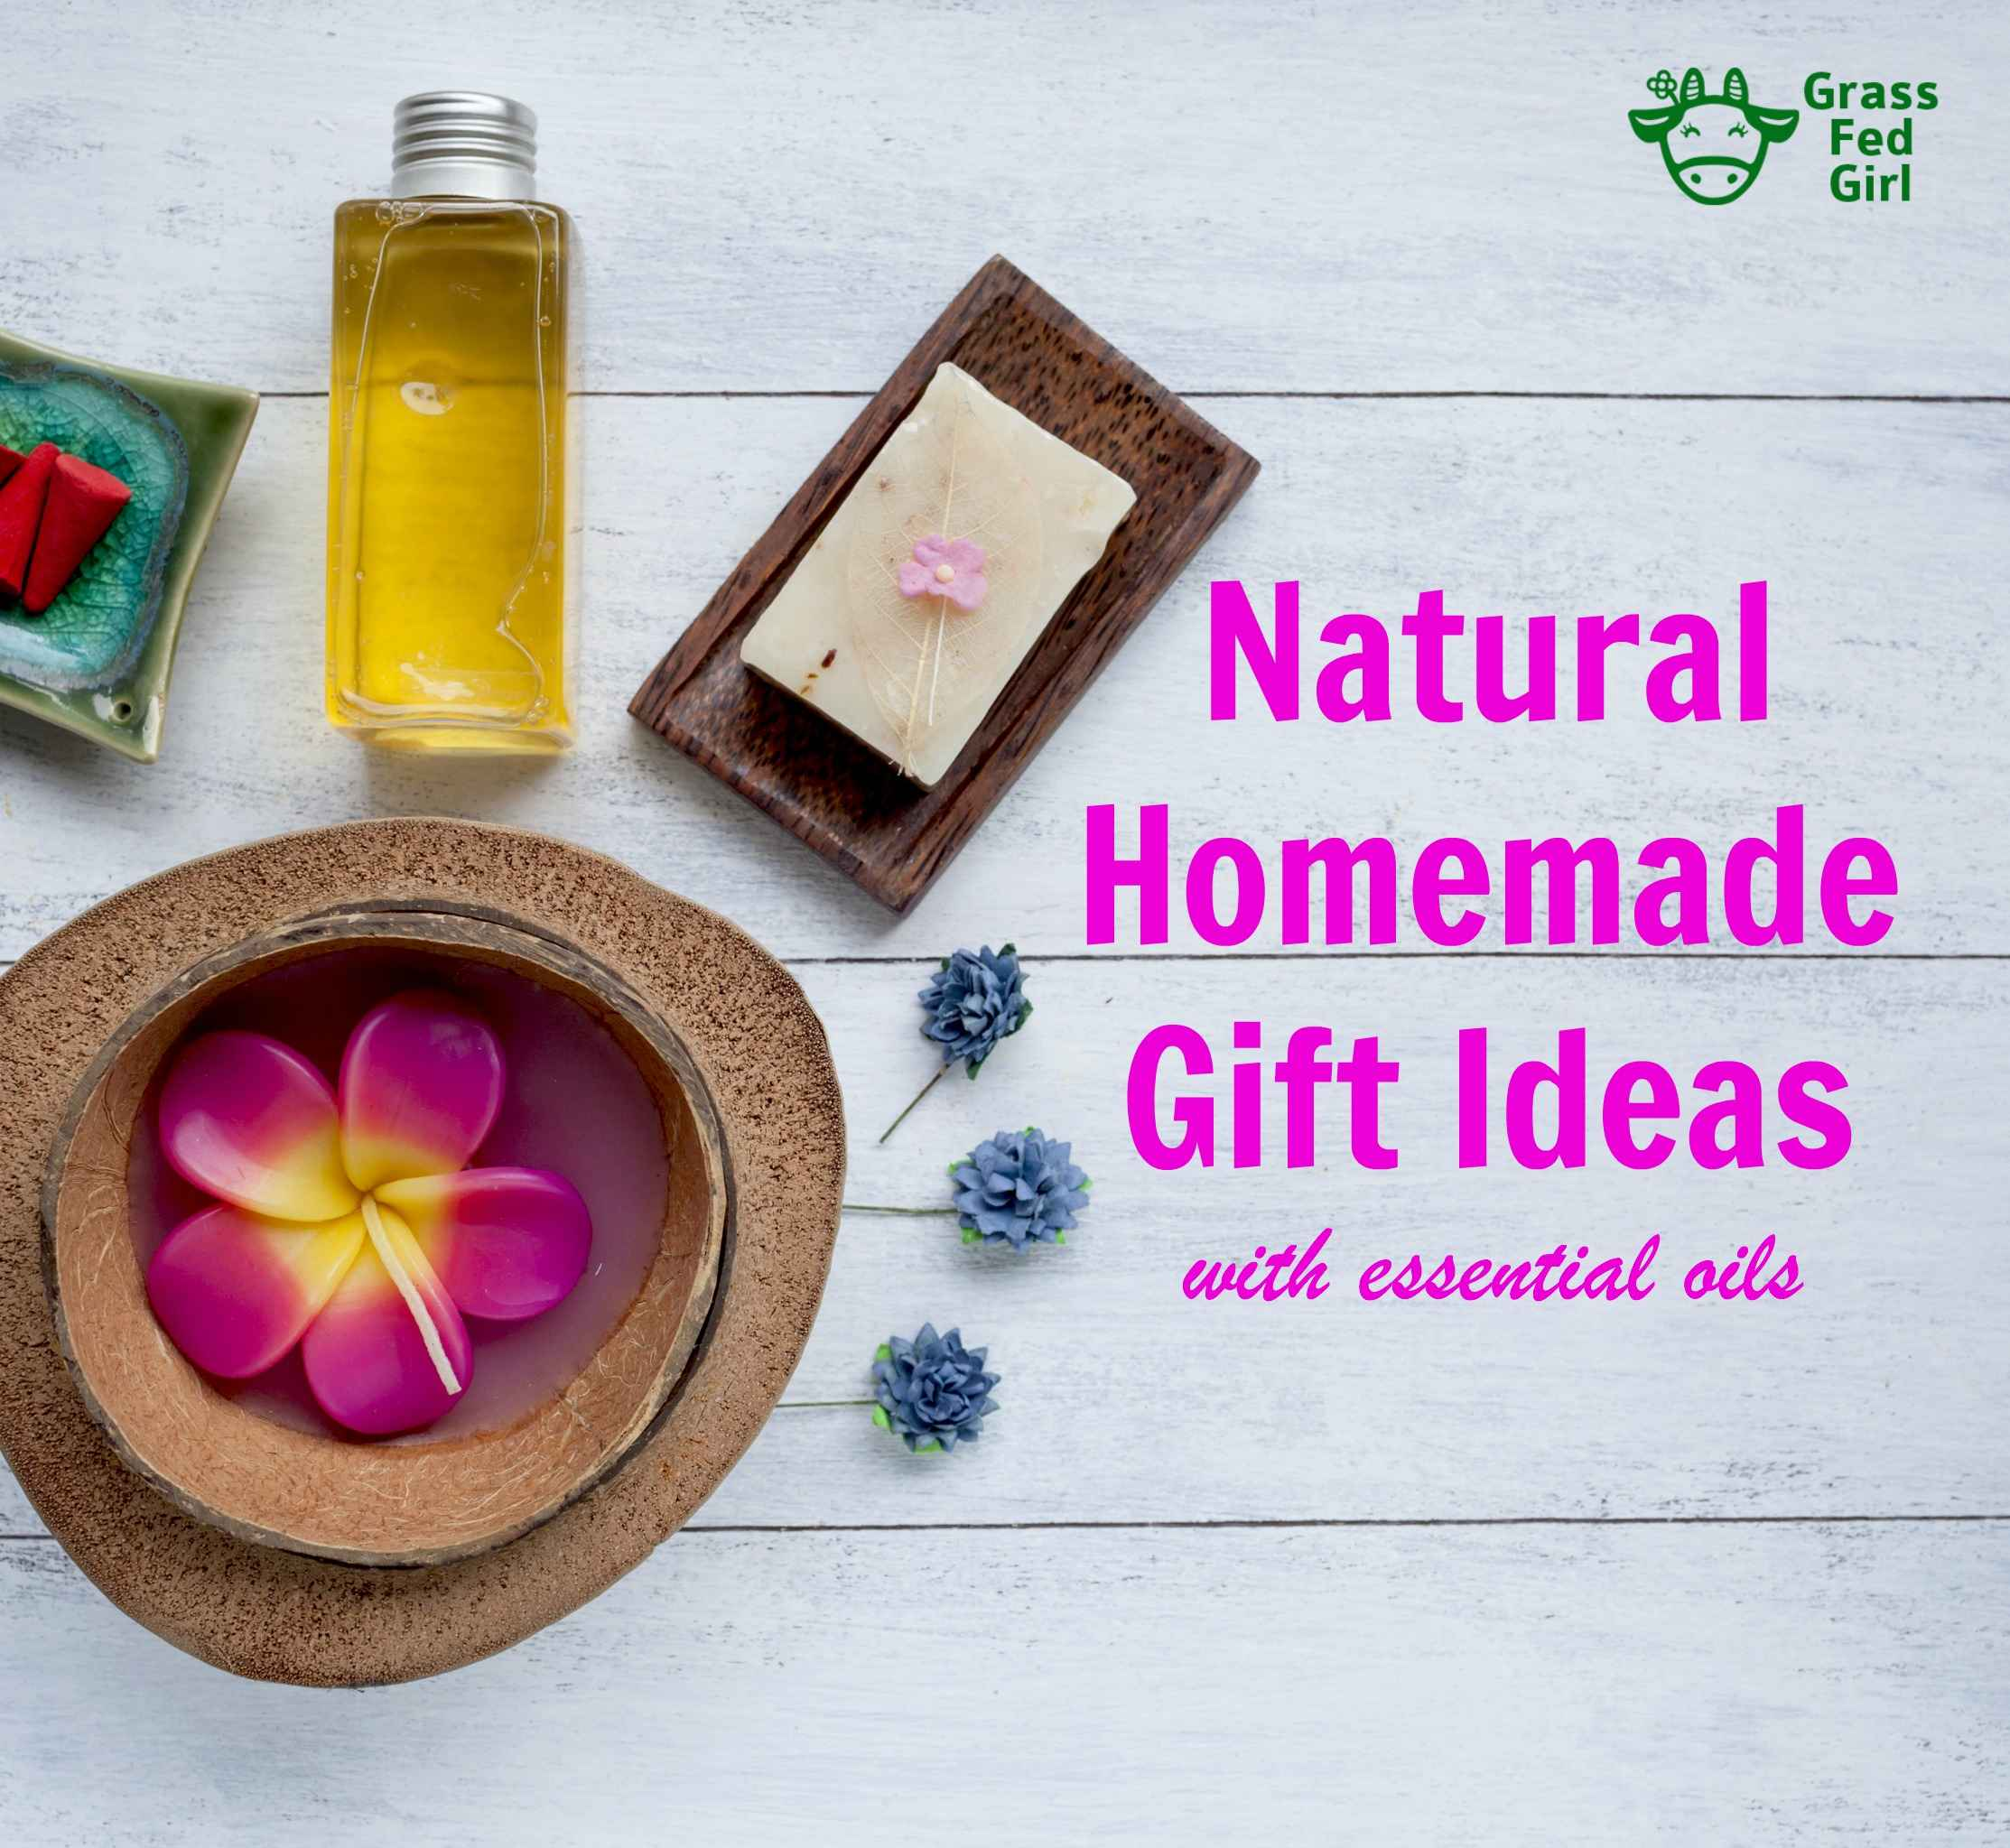 Natural Homemade Christmas Gift Ideas with Essential Oils ...